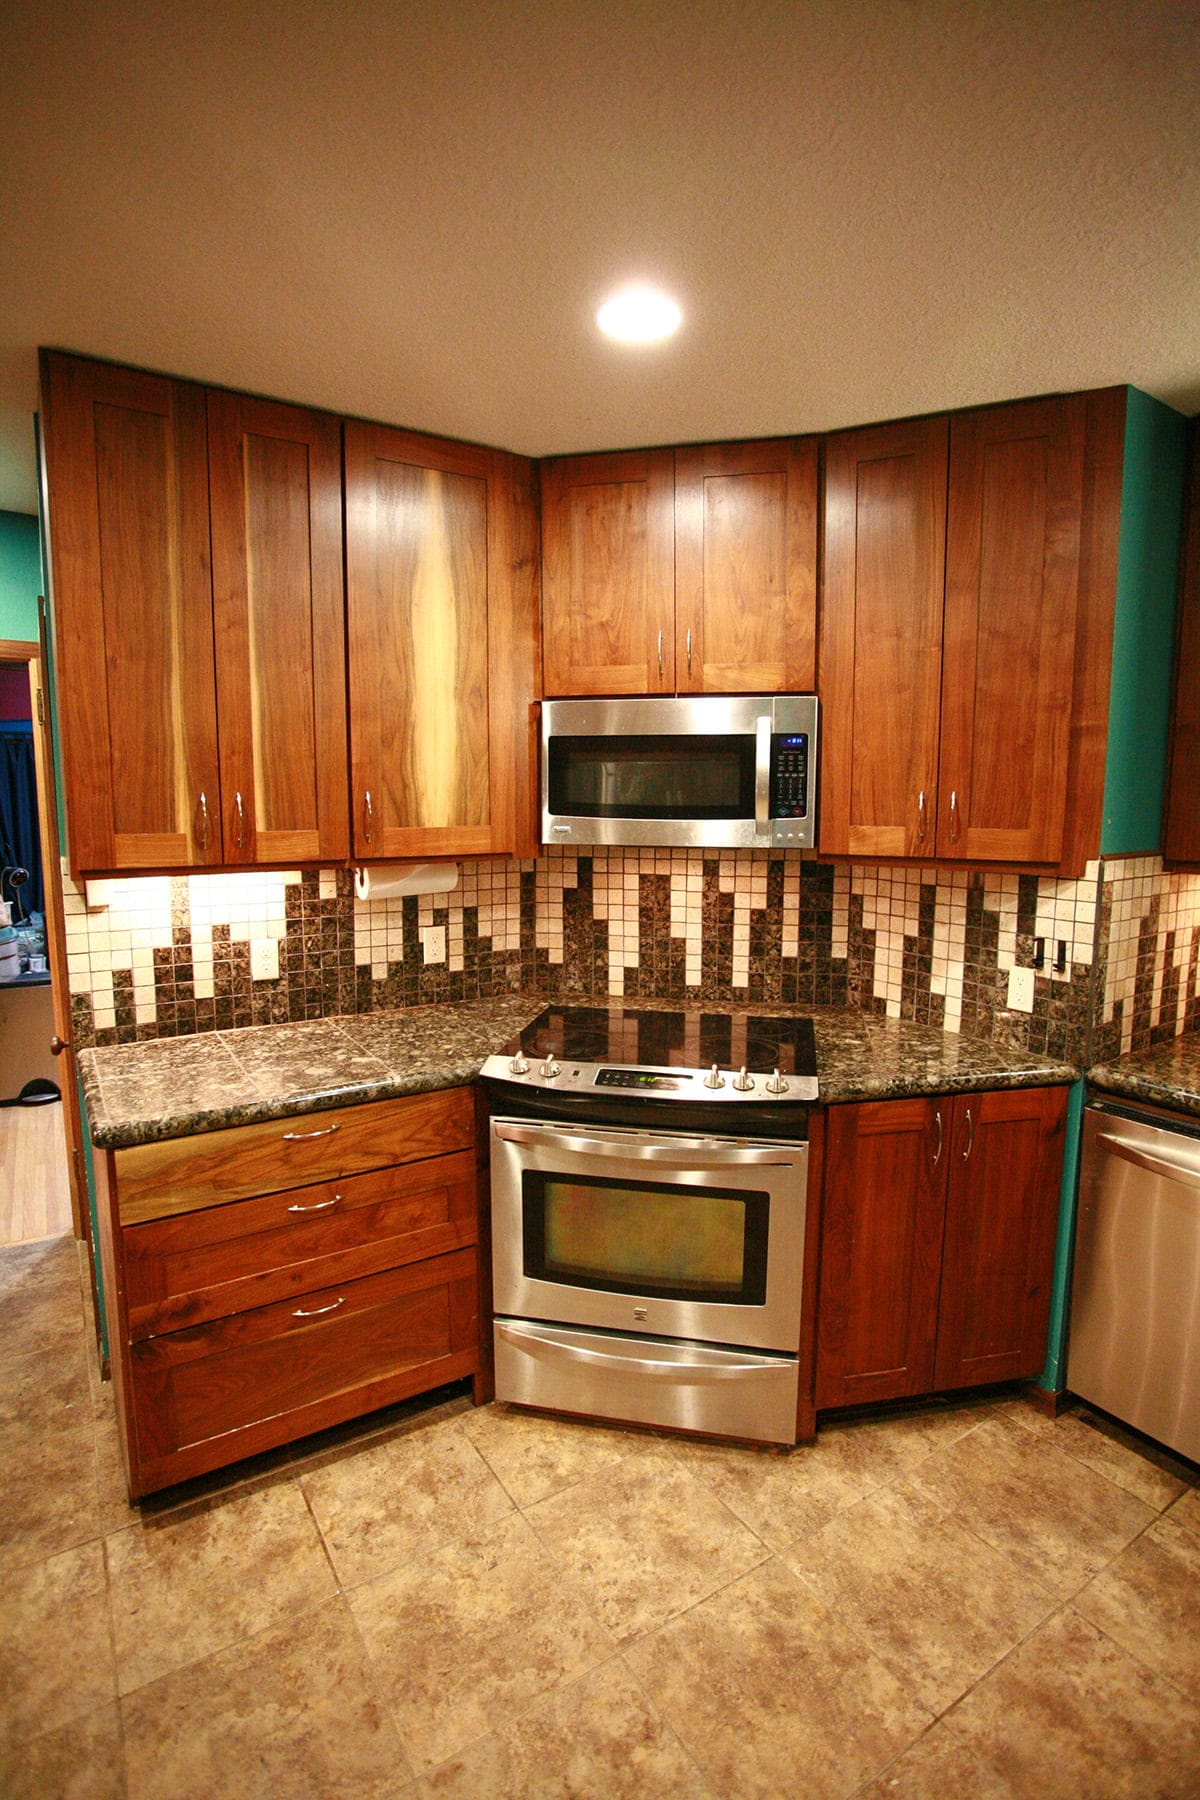 A full view of a section of kitchen. The floor is brown and mottled looking, the cabinetry is black walnut, the walls are teal, the appliances are stainless steel, and the backsplast and counter is in dark granite with lighter accents on the backsplash.